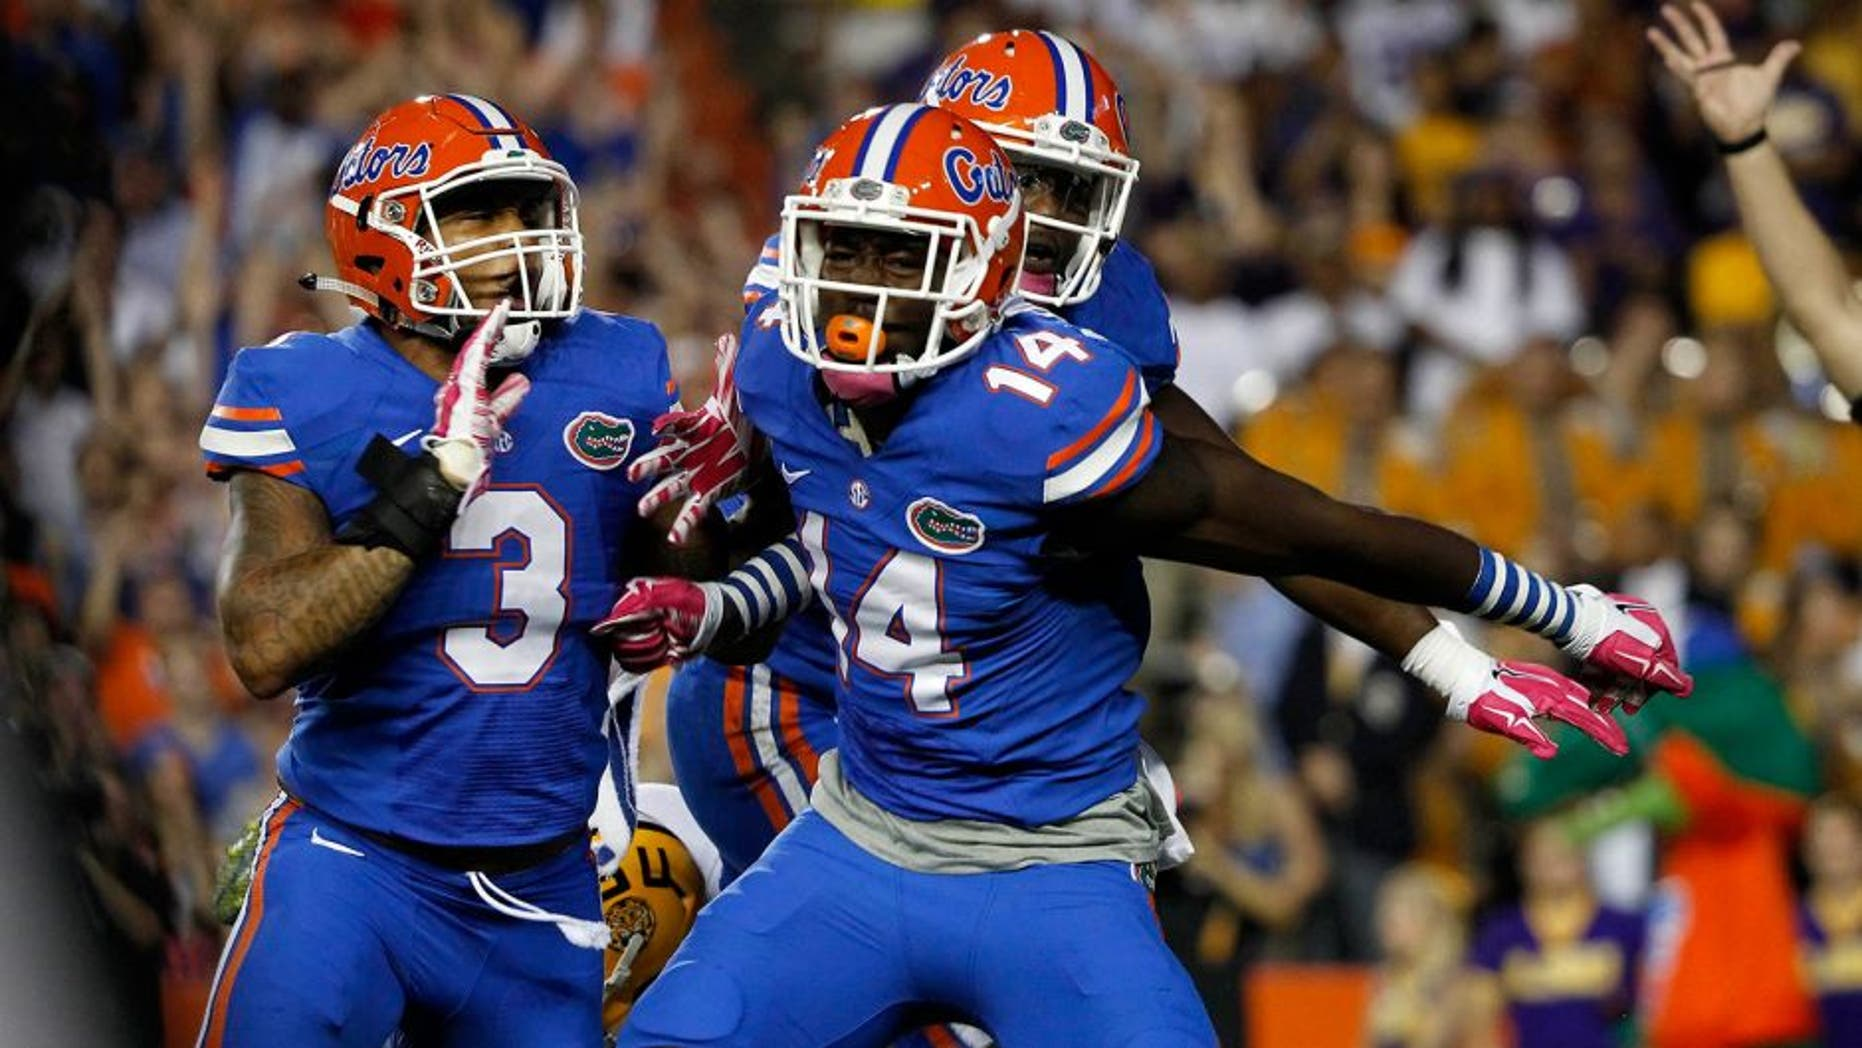 Oct 11, 2014; Gainesville, FL, USA; Florida Gators defensive lineman Alex McCalister (14) reacts after he sacks LSU Tigers quarterback Anthony Jennings (10) during the first quarter at Ben Hill Griffin Stadium. Mandatory Credit: Kim Klement-USA TODAY Sports